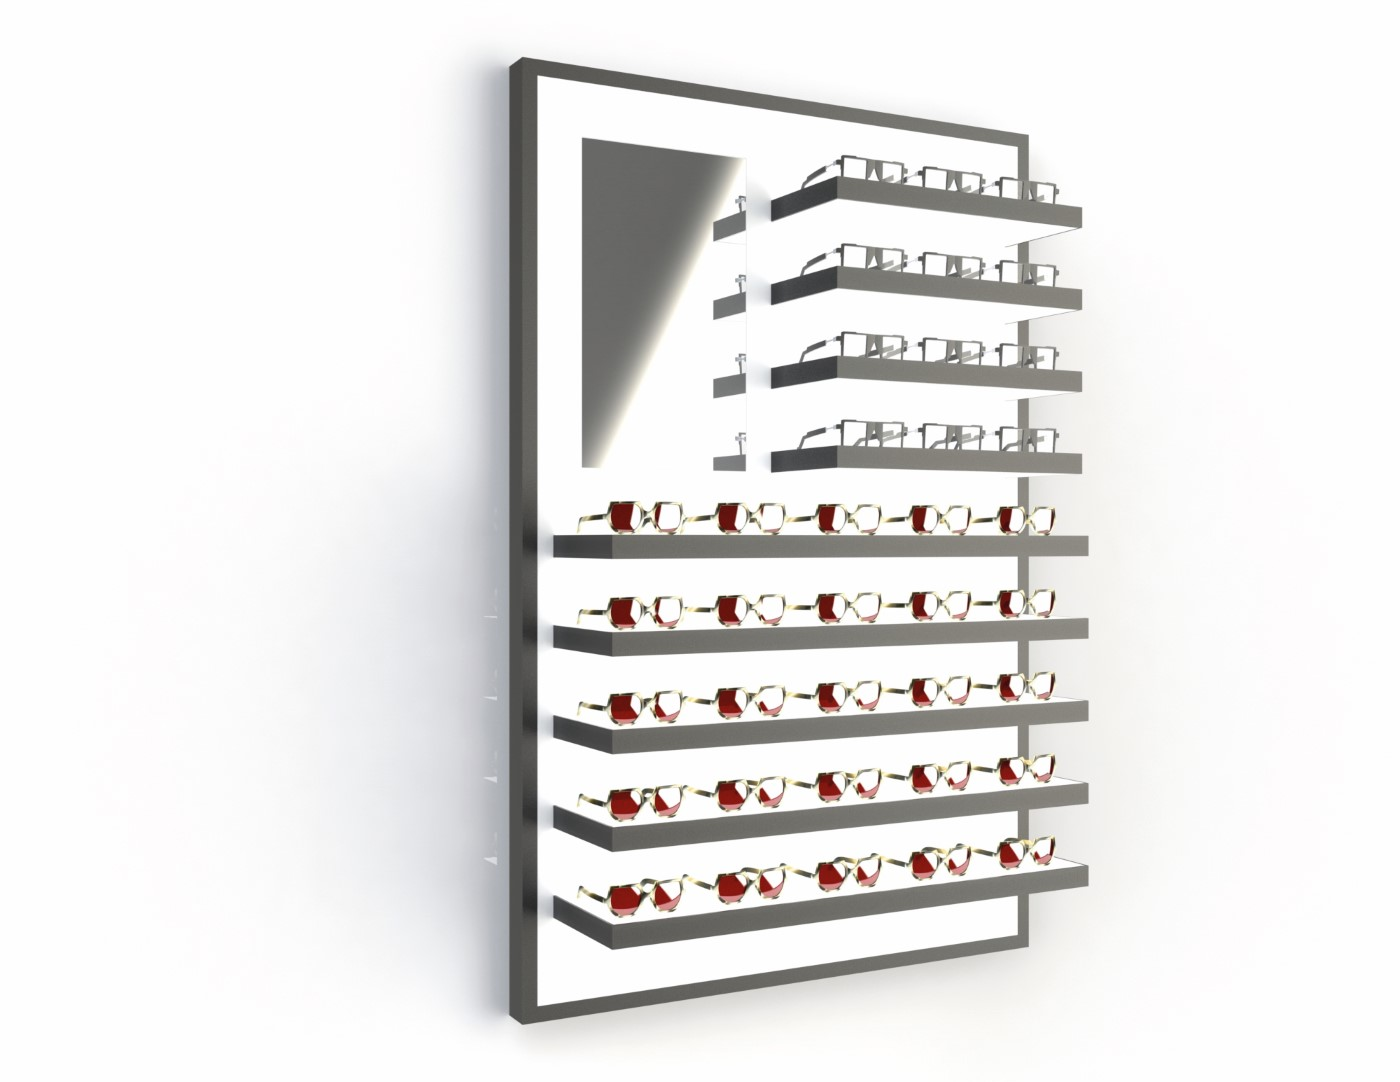 <strong>#58171B/L-B</strong><br>9x 35mm LED shelves<br>Mirror<br>37 frames